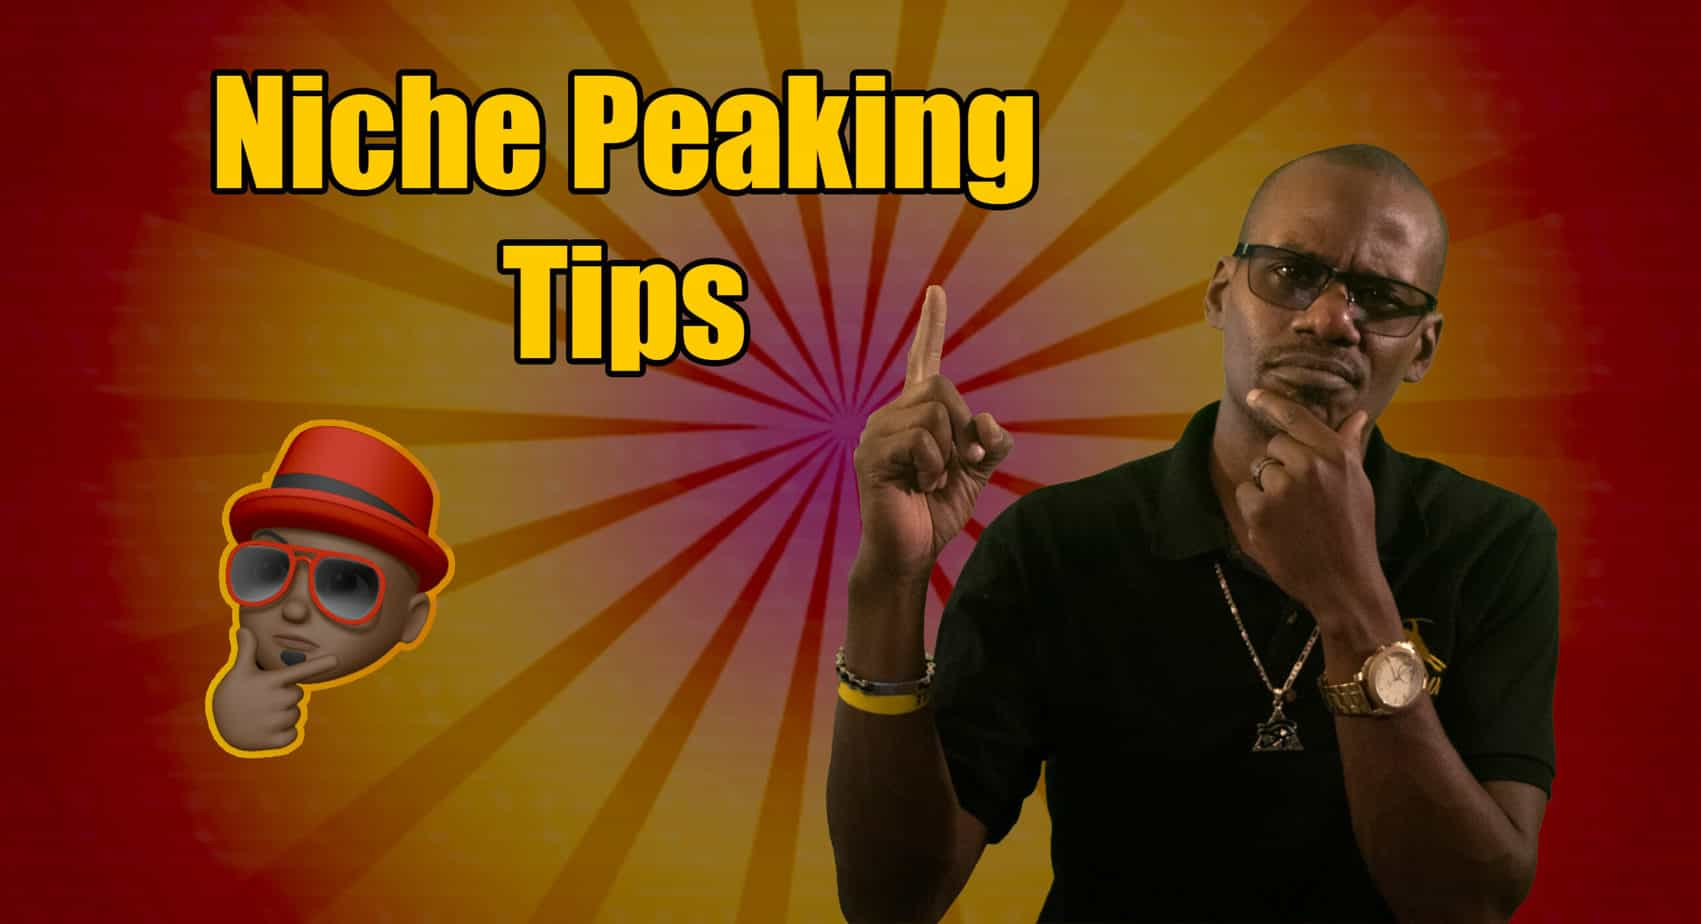 niche-peaking-tips